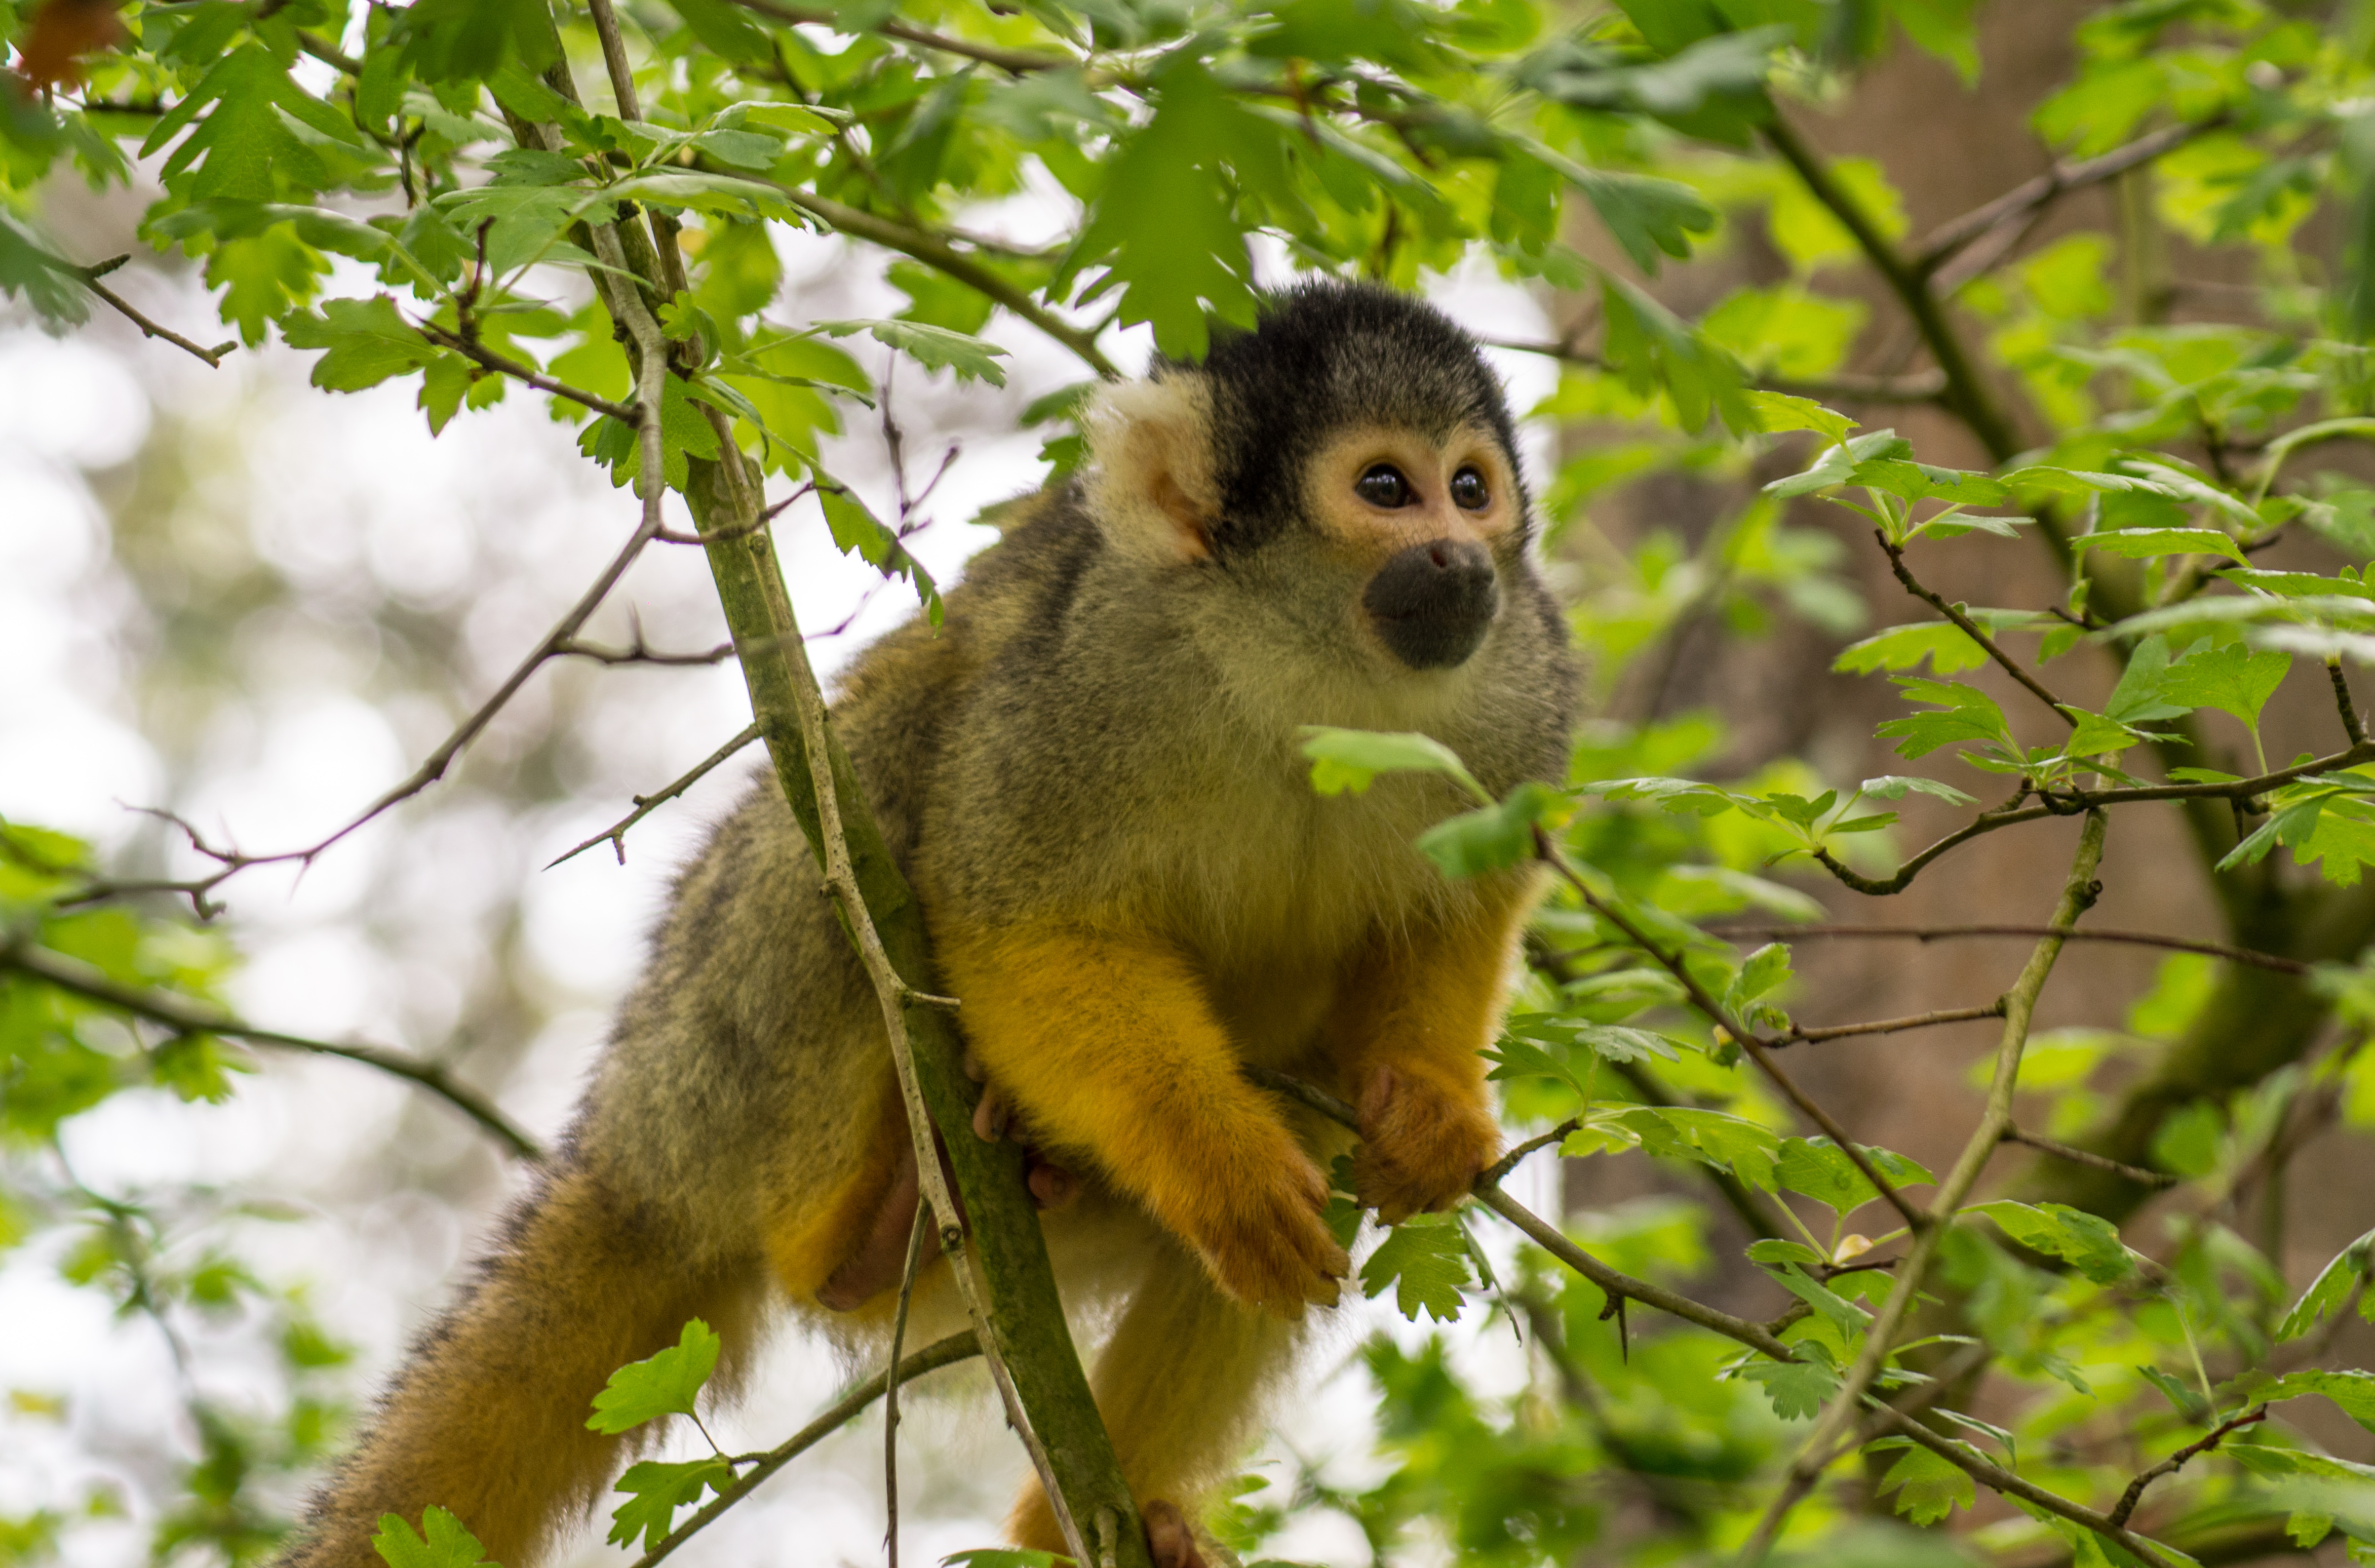 147549 download wallpaper Animals, Monkey, Marmoset, Animal, Nice, Sweetheart screensavers and pictures for free